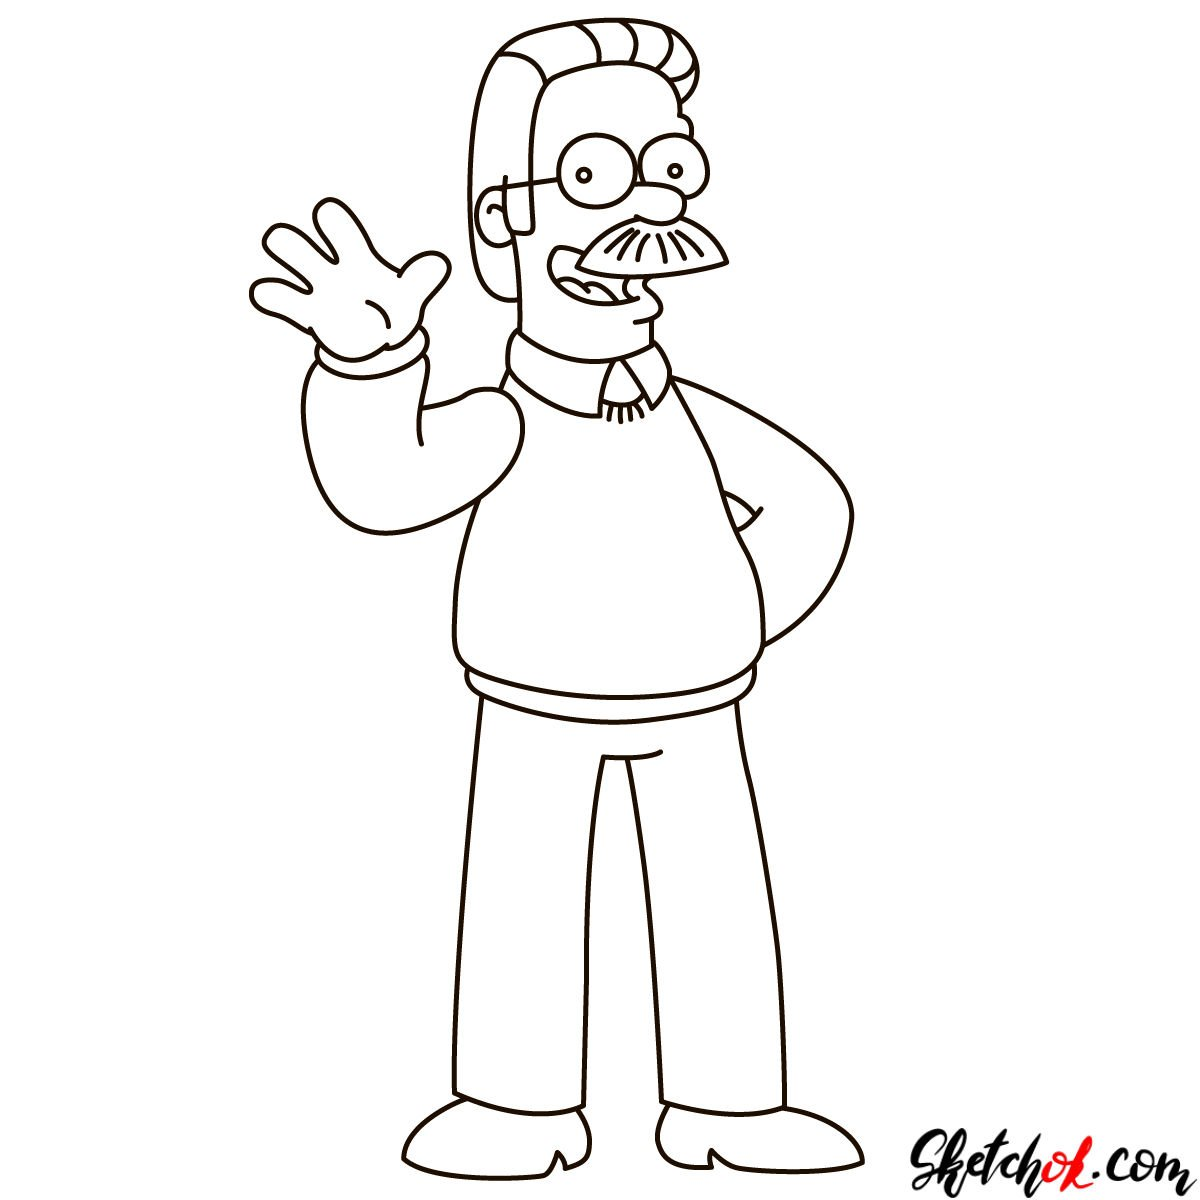 How to draw Ned Flanders - step 10